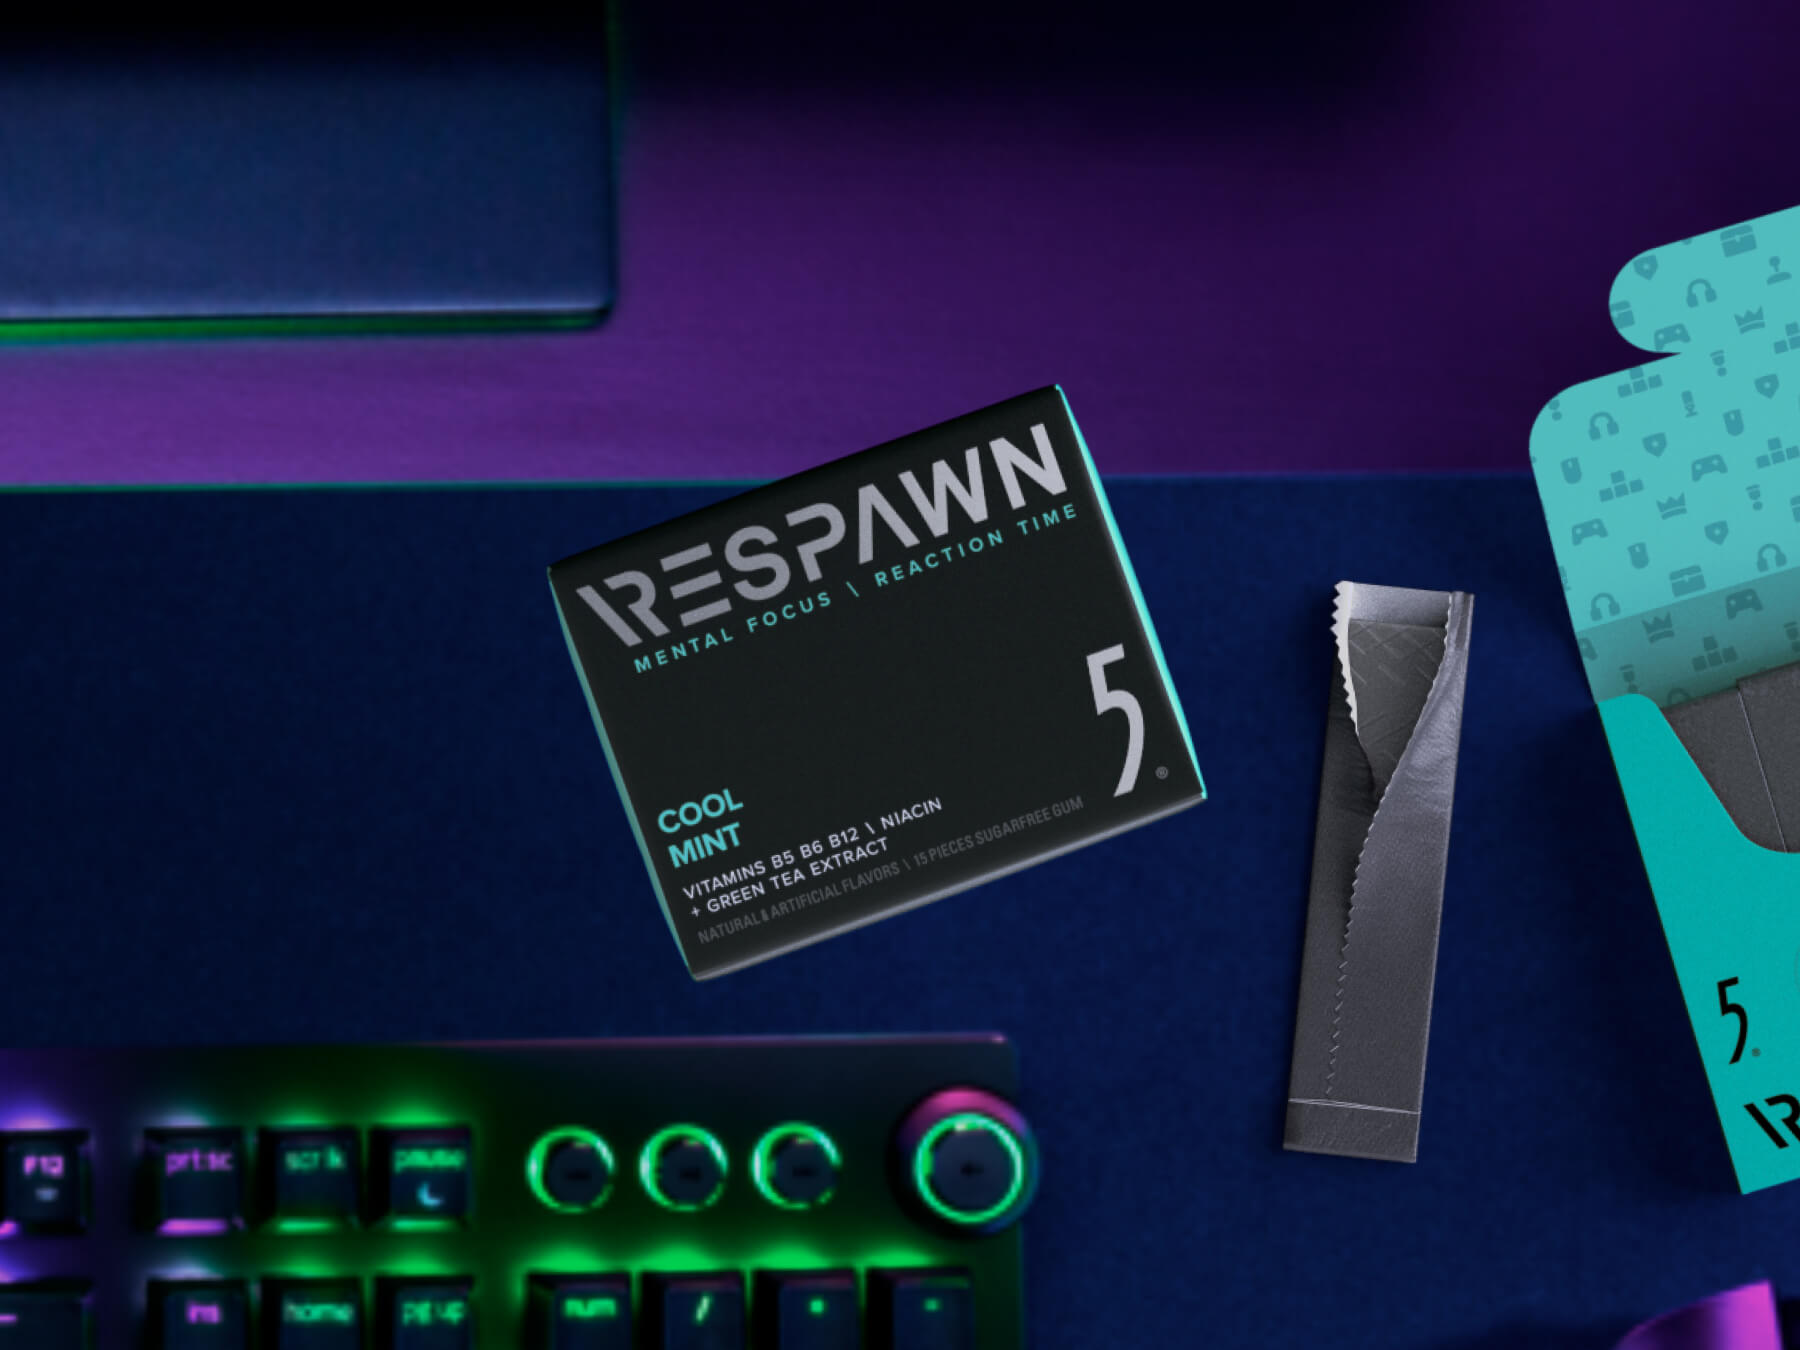 Respawn by 5 Gum